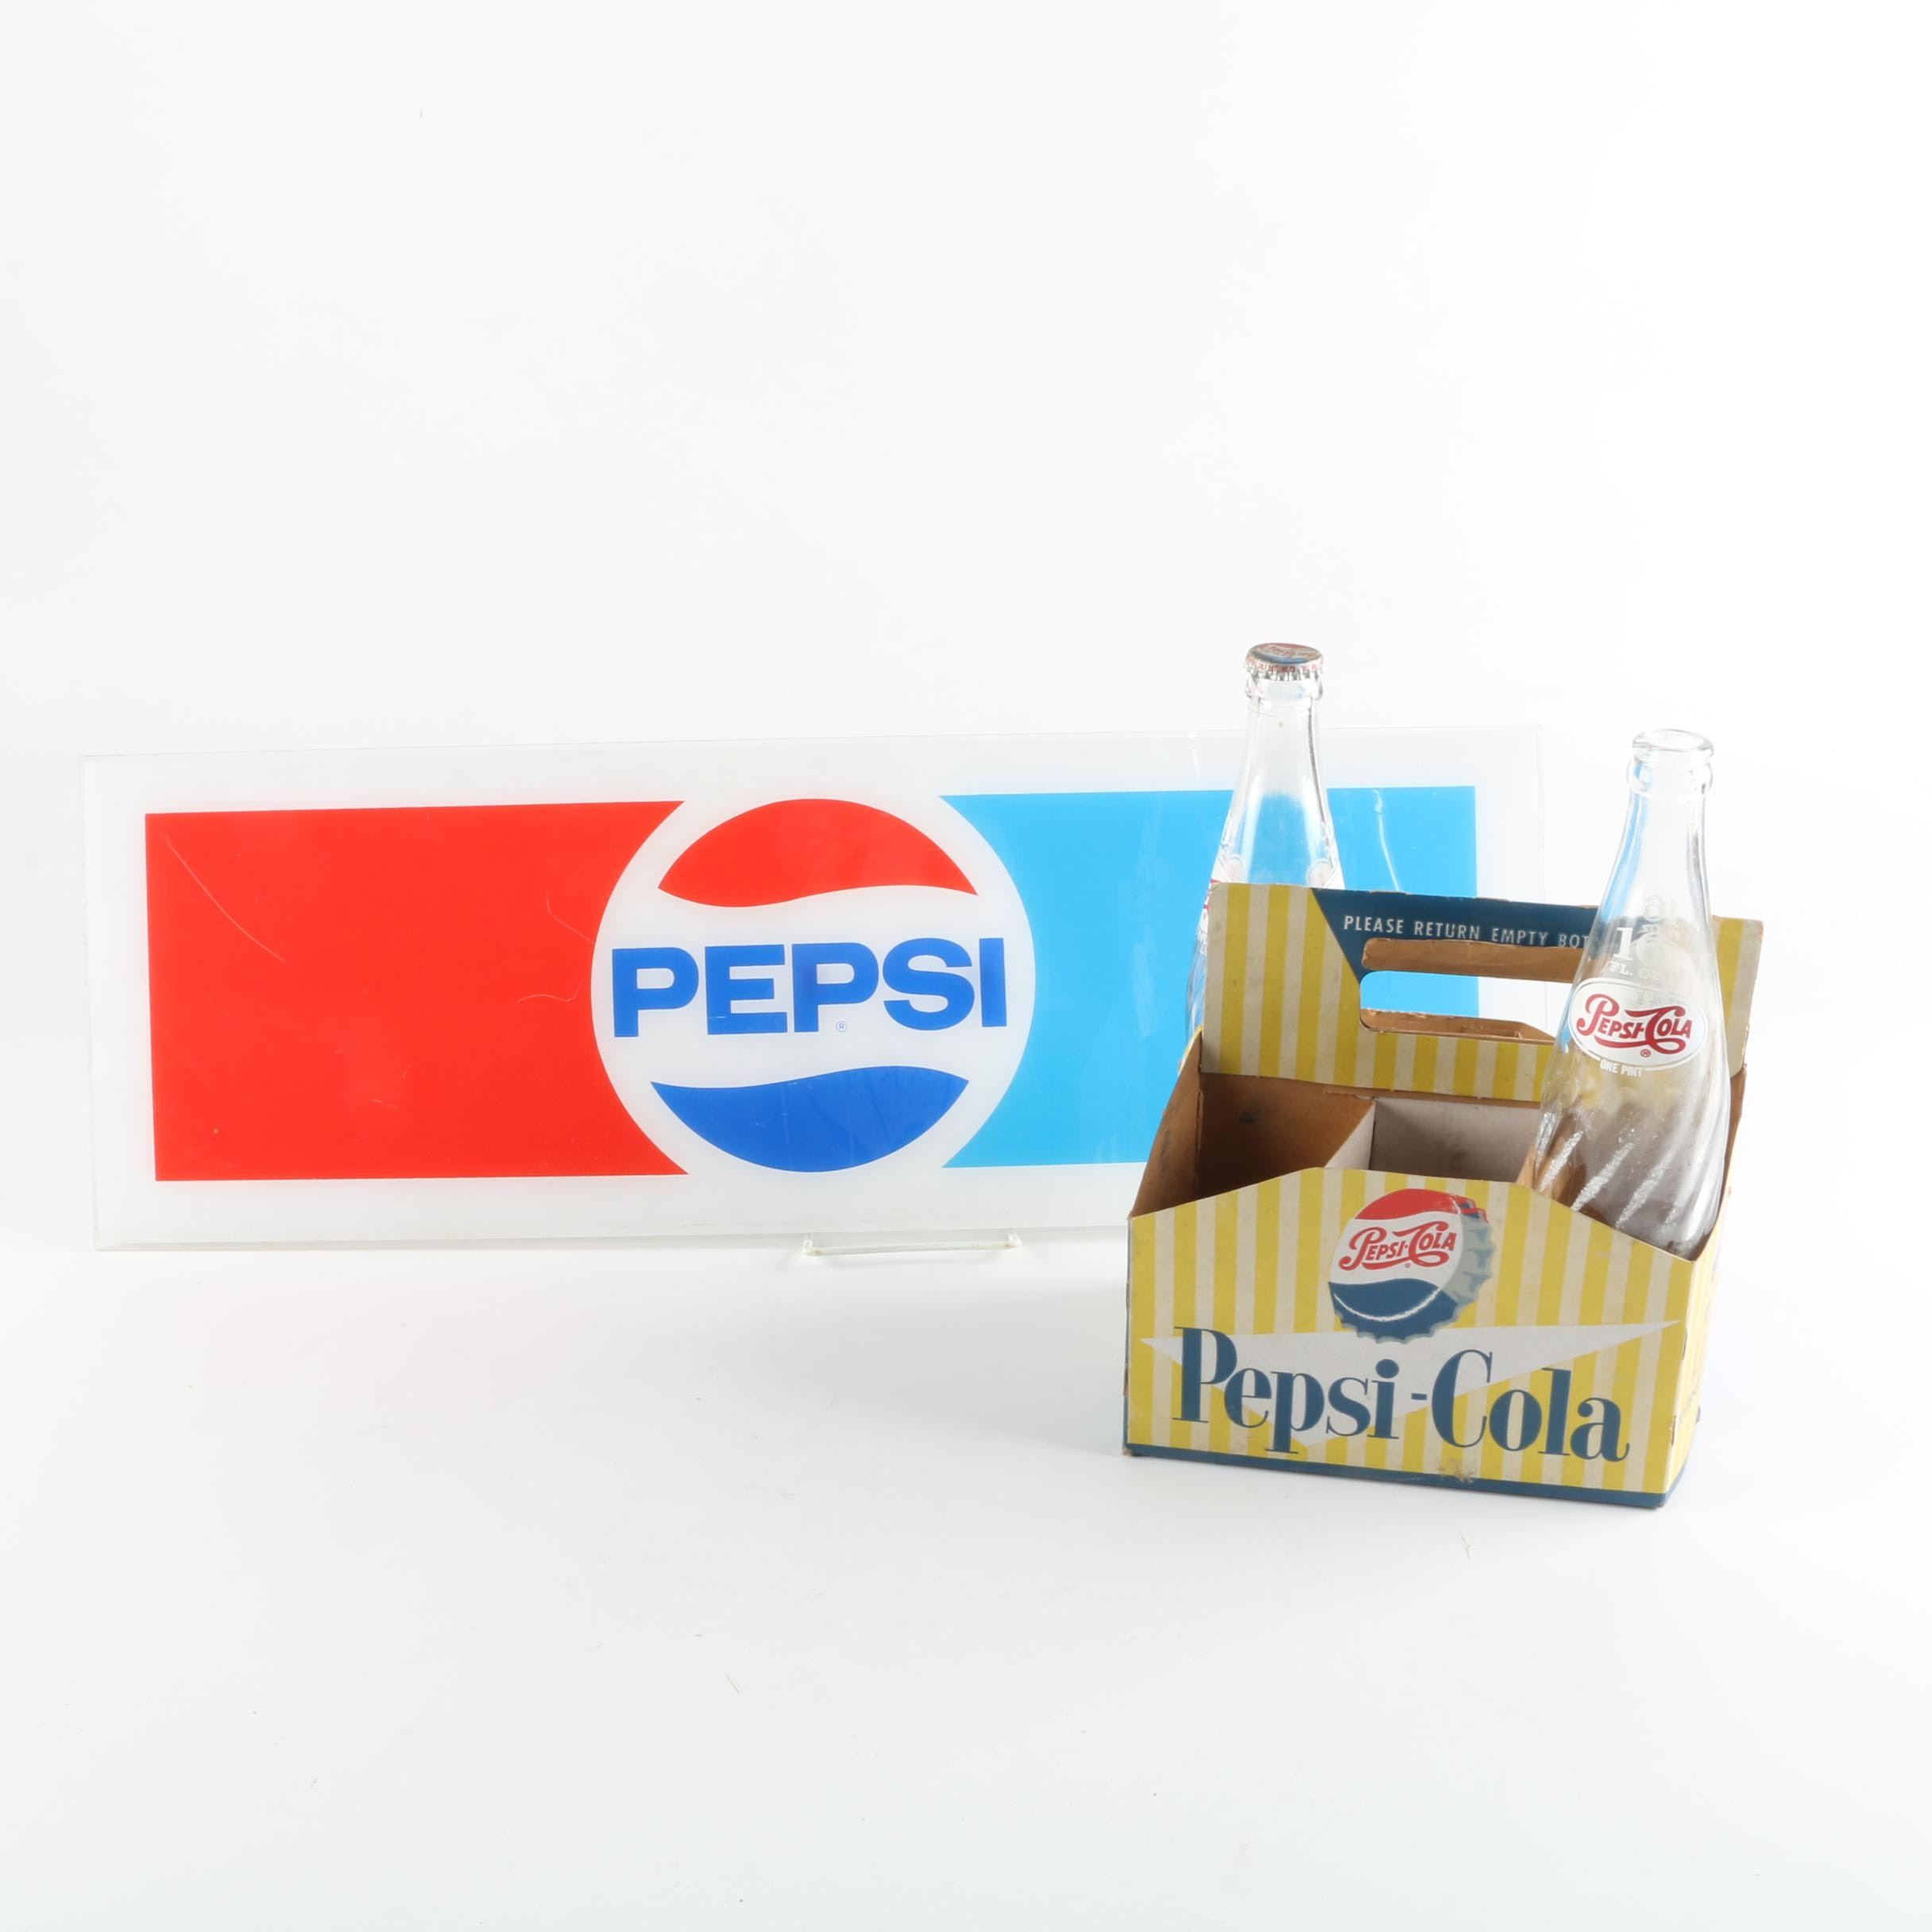 Pepsi Cola Sign, Bottles and Cardboard Carrier